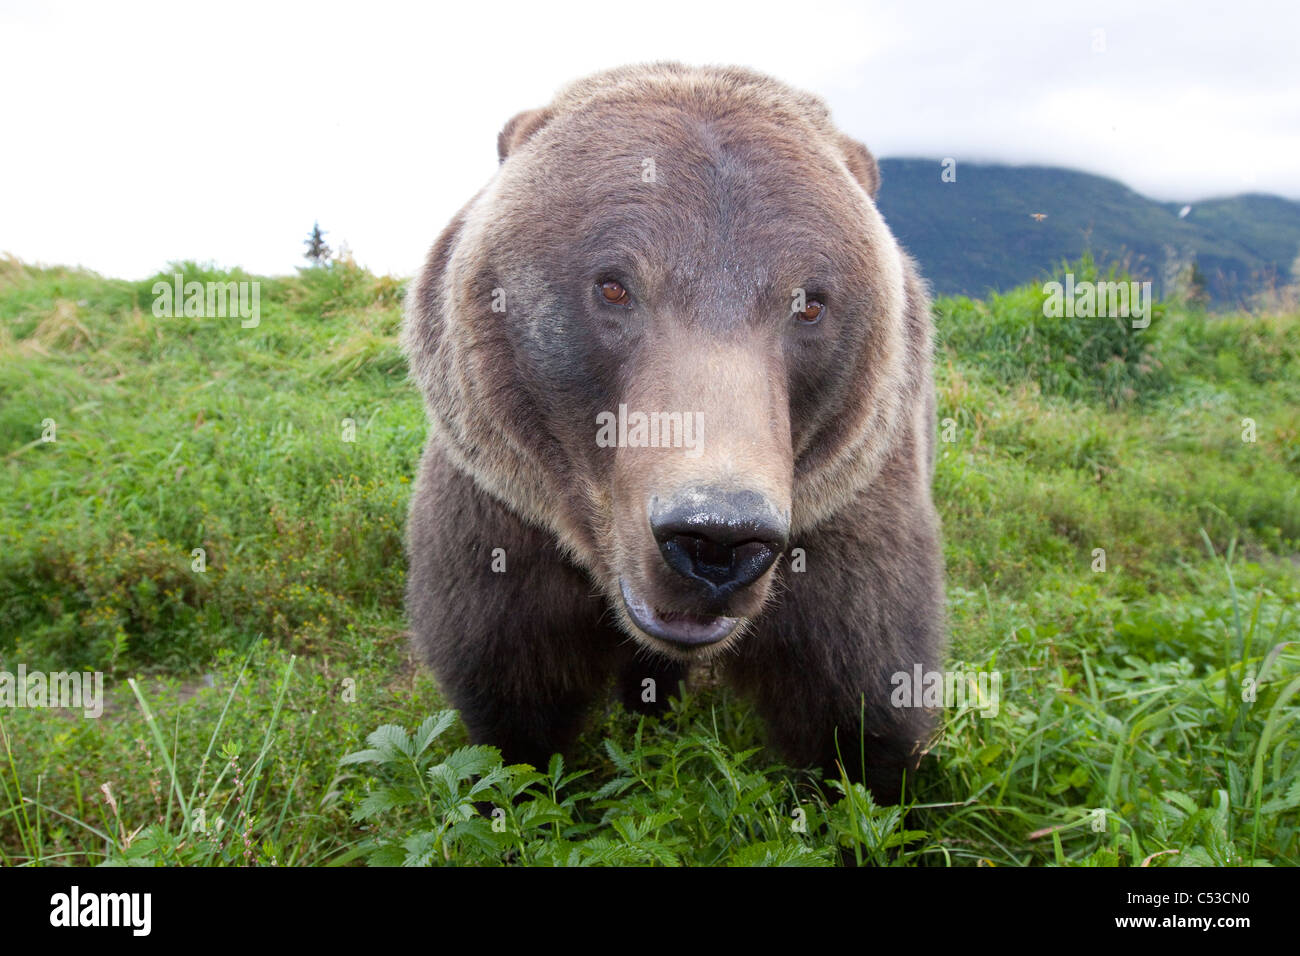 Close up wide-angle view of a Brown bear at Alaska Wildlife Conservation Center, Southcentral Alaska, Summer. Captive - Stock Image